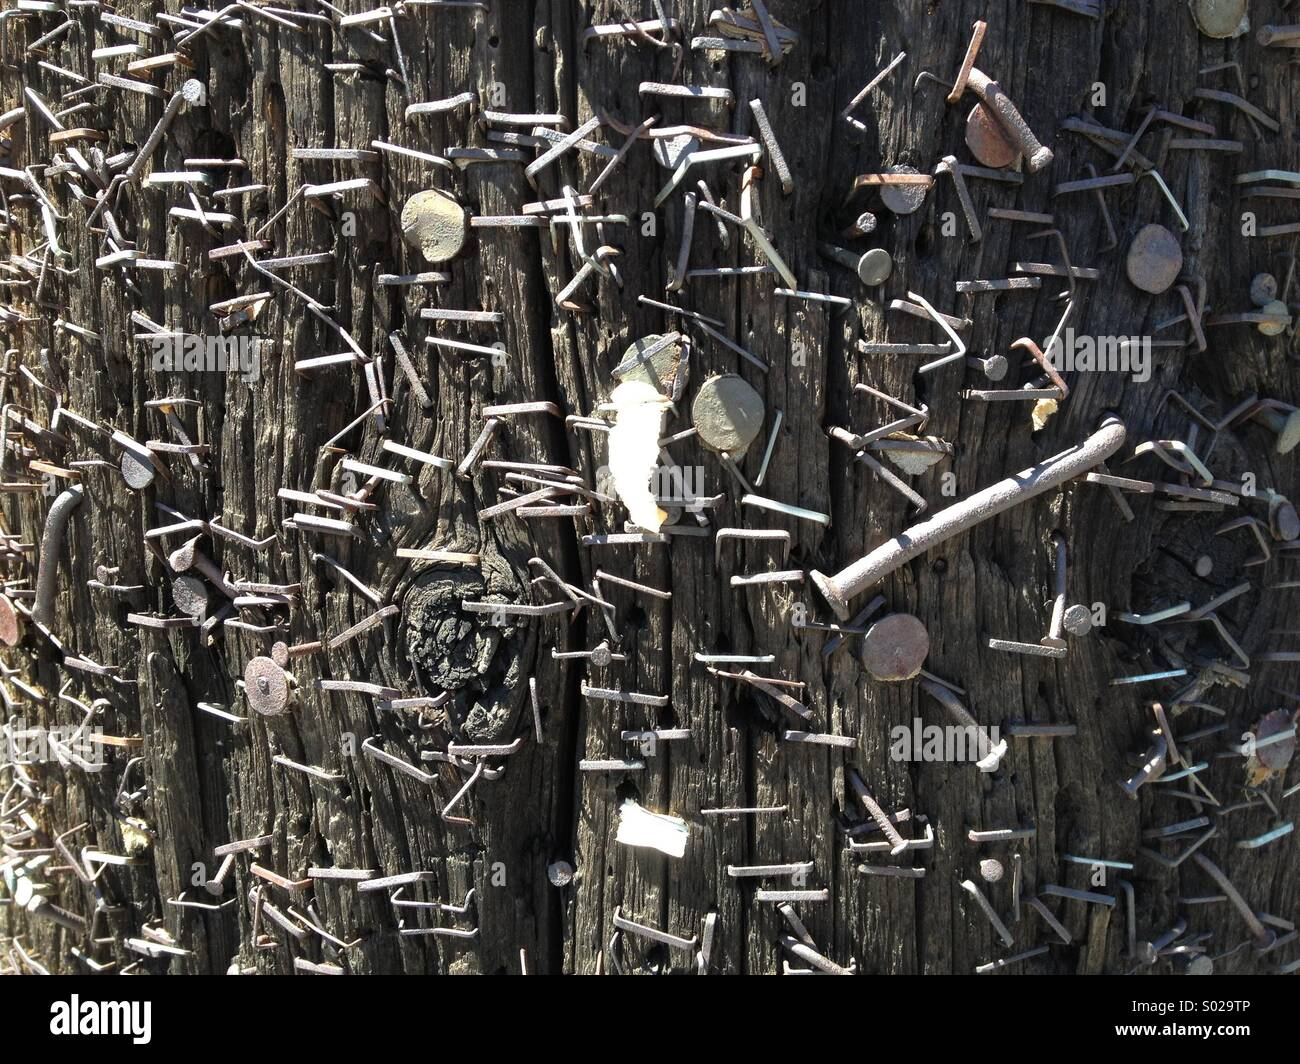 Nails and staples in a telephone pole create an interesting pattern - Stock Image